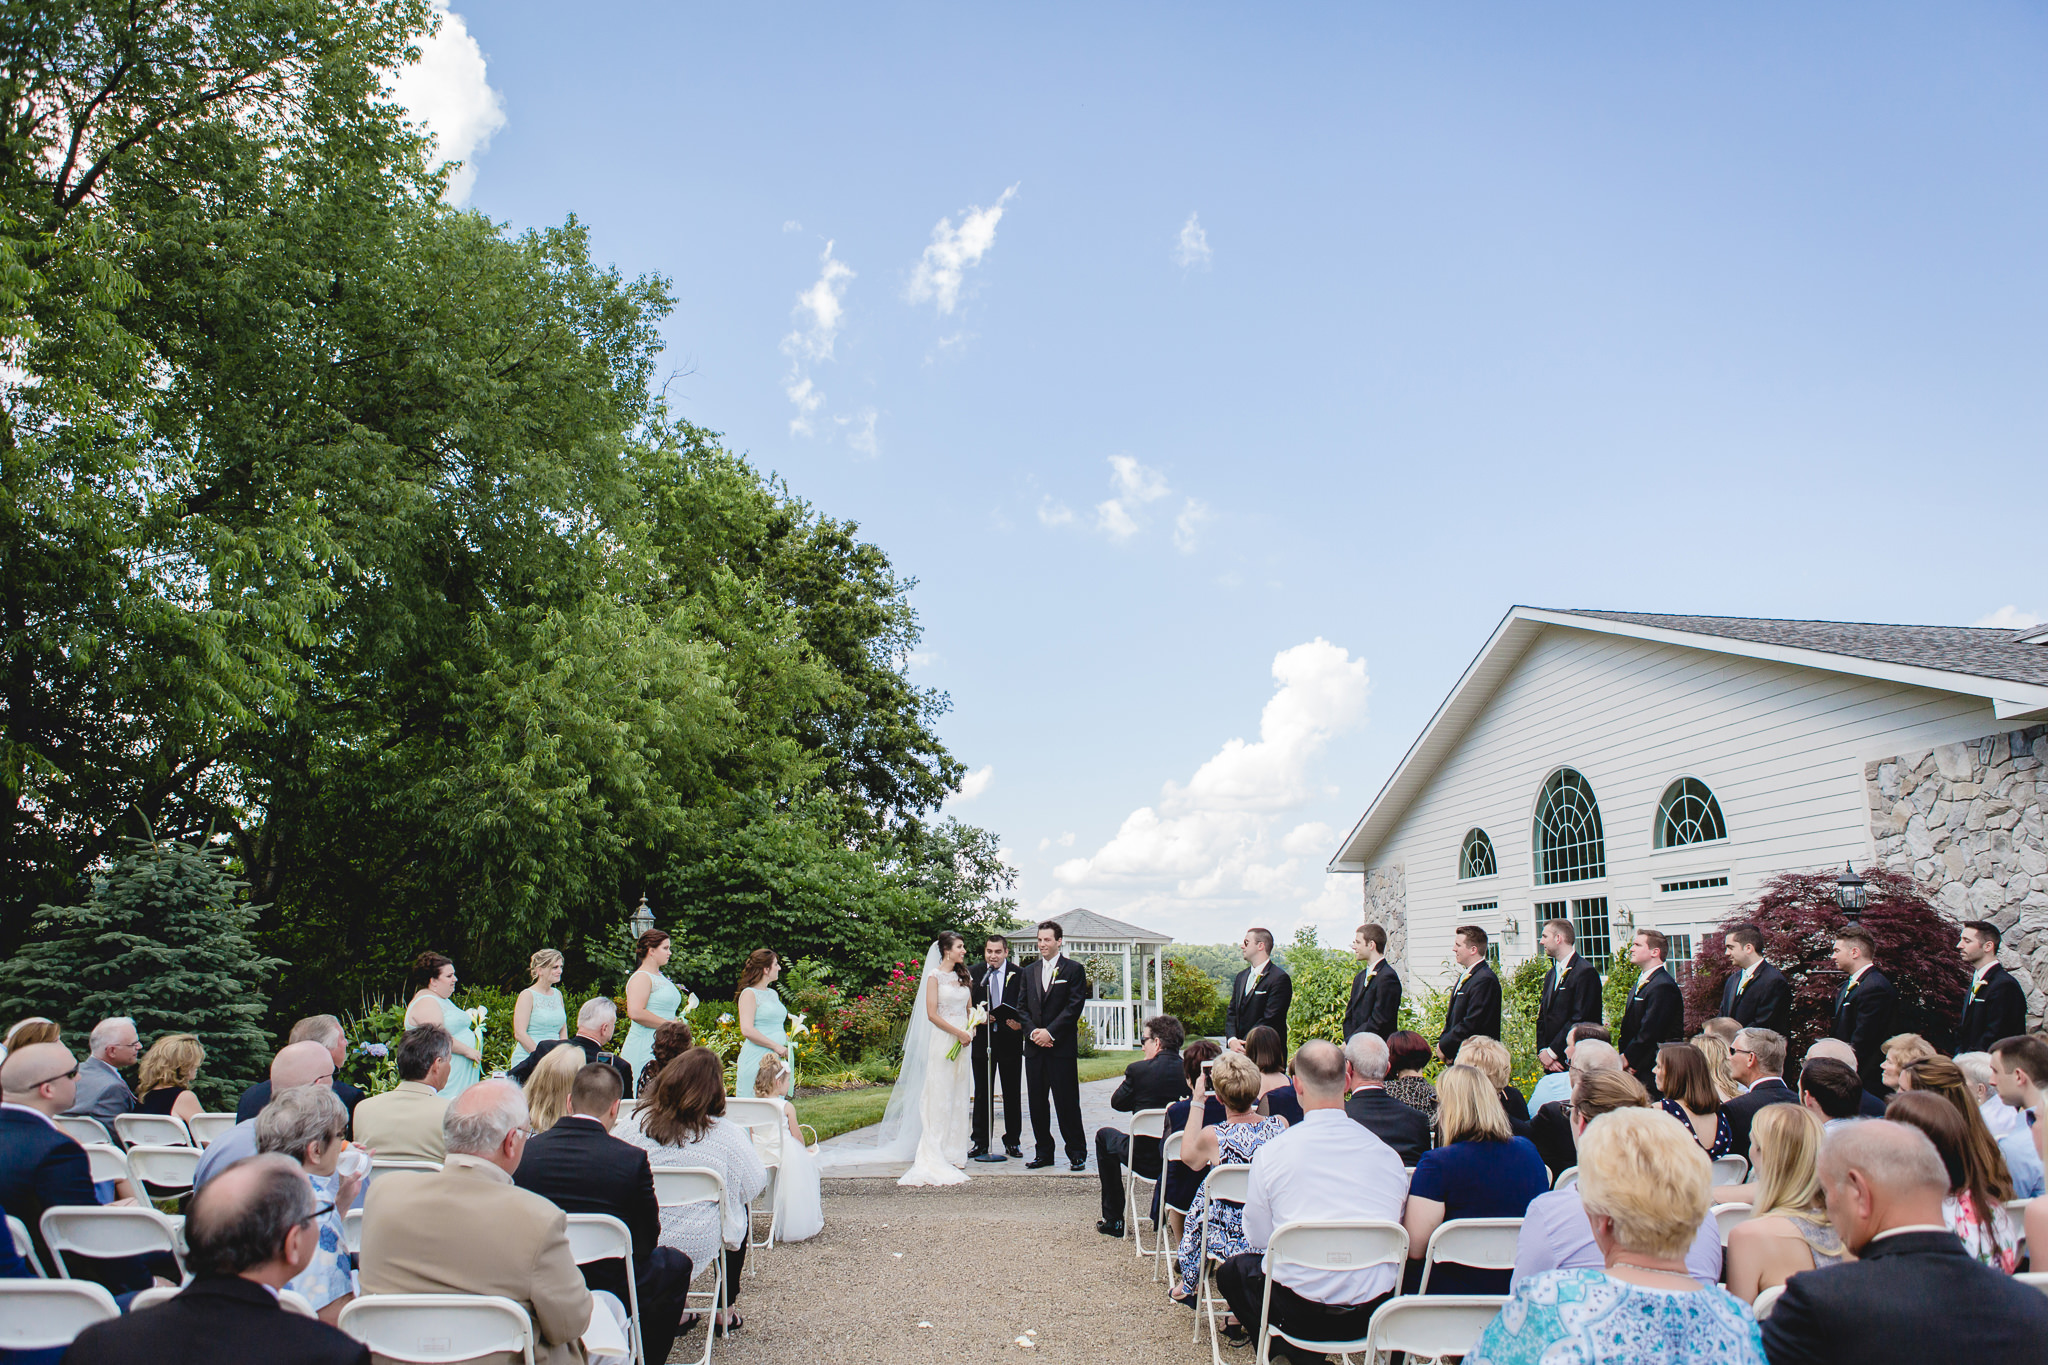 Outdoor wedding ceremony at Greystone Fields in Gibsonia, PA